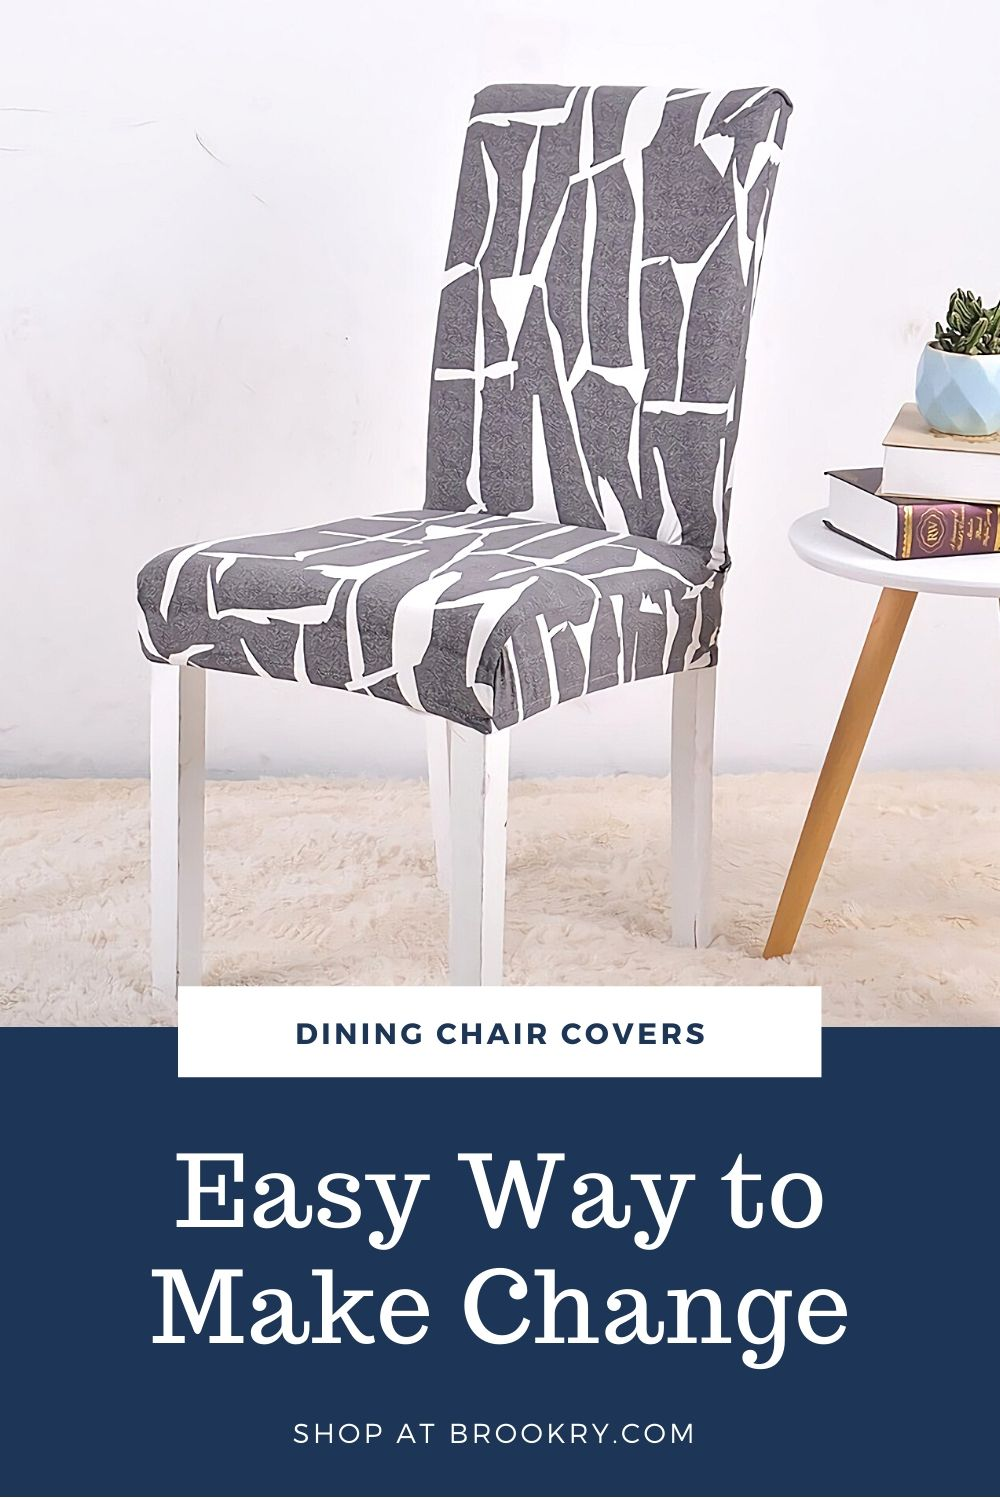 Get our new stretch chair covers by clicking the pin! 💯   #chaircovers #diningchaircover #diningroomchair #diningroomchairs #diningroom #diningroomdecor #diningroommakeover #homedecorindonesia #homedecorshop #homedecoridea #homedecorstore #homedecortips #homedecoracao #textiles #textile #textiledesign